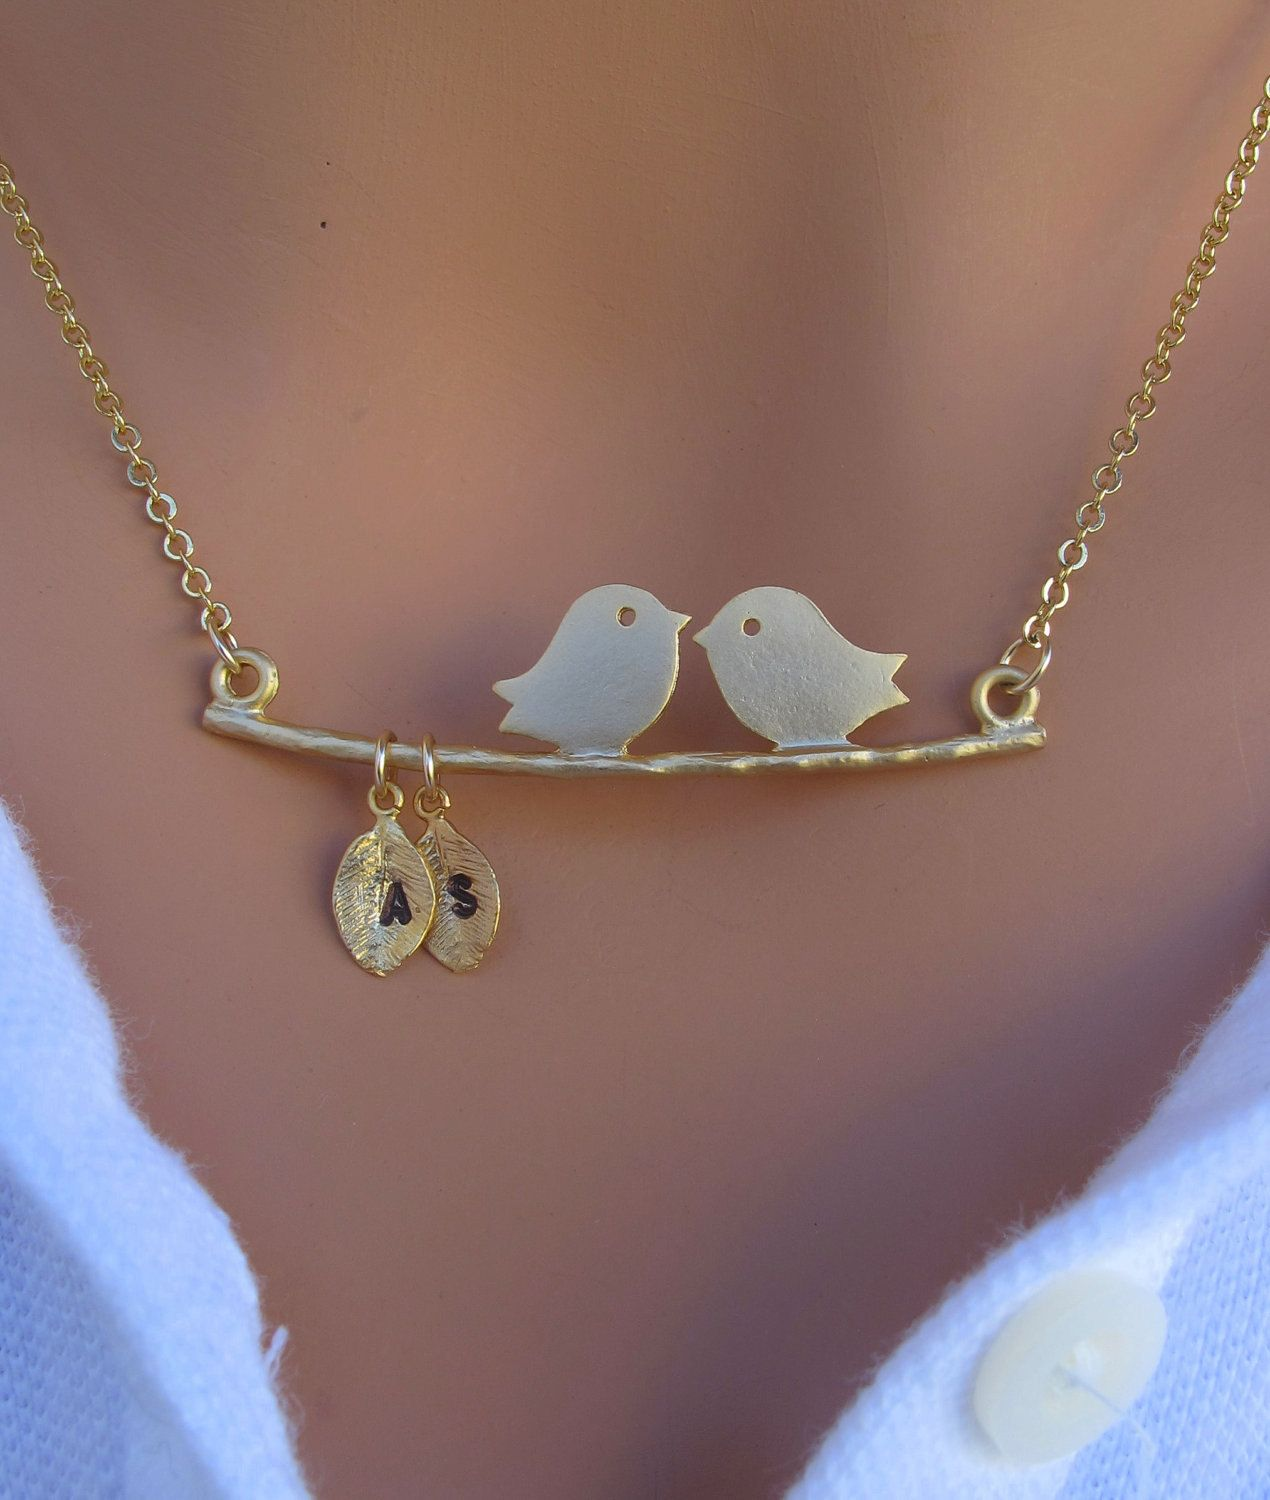 animal chain pendant birds love accessories item jewelry bird necklace enamel six from thin best long women cute gifts creative necklaces in on branch friend